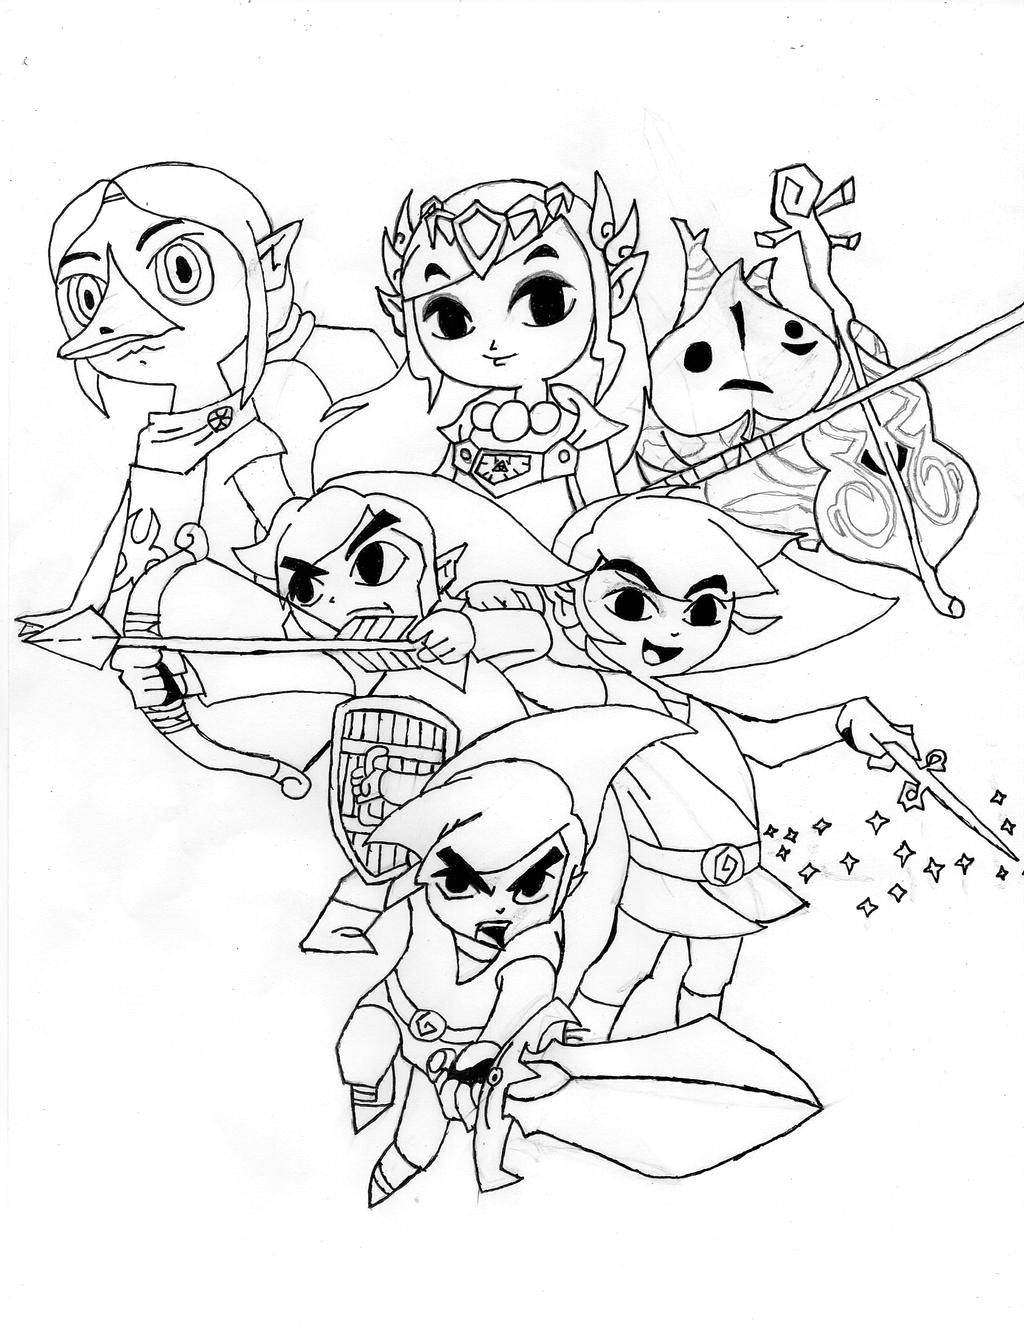 Legend Of Zelda Wind Waker Coloring Pages Legend Zelda Wind Waker Drawing D by Chaoticblades212